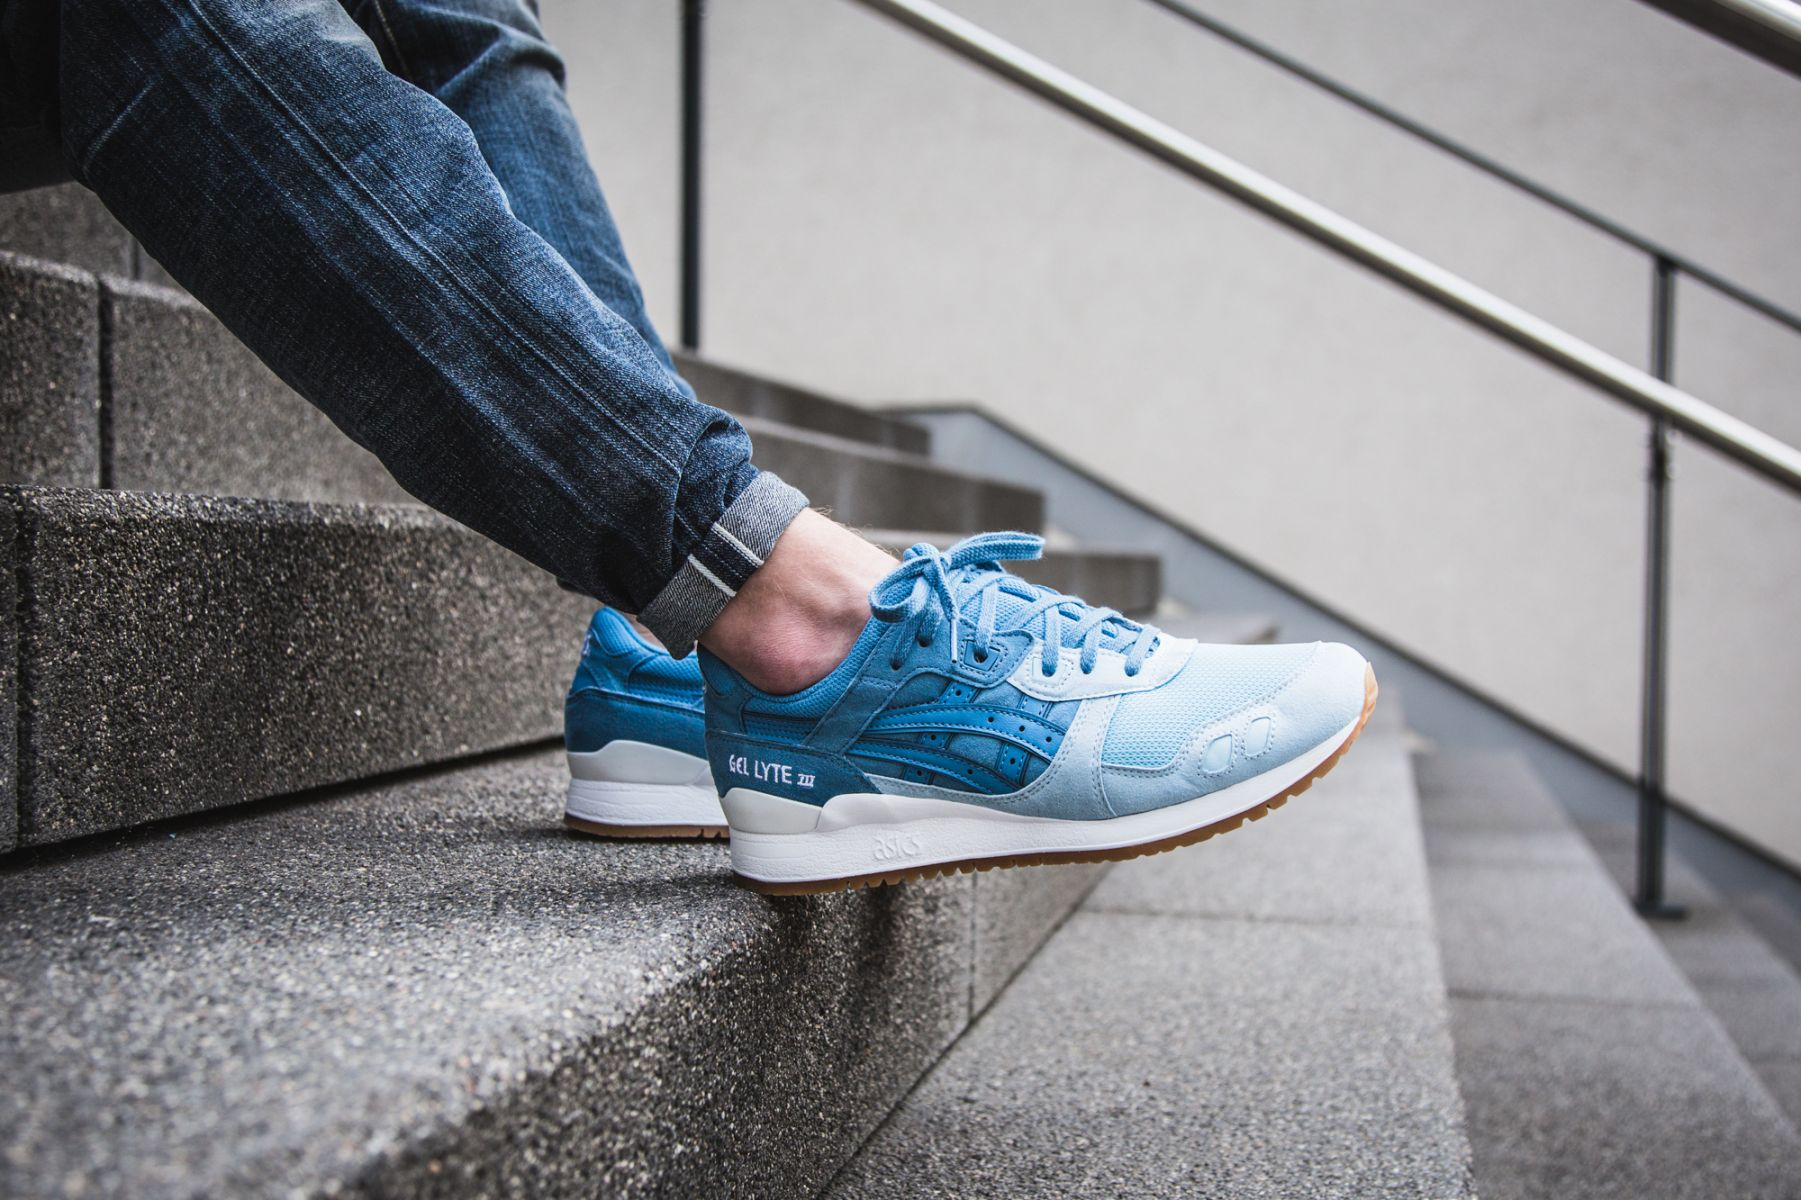 asics-gel-lyte-iii-blue-h7e4y-5456-mood-1